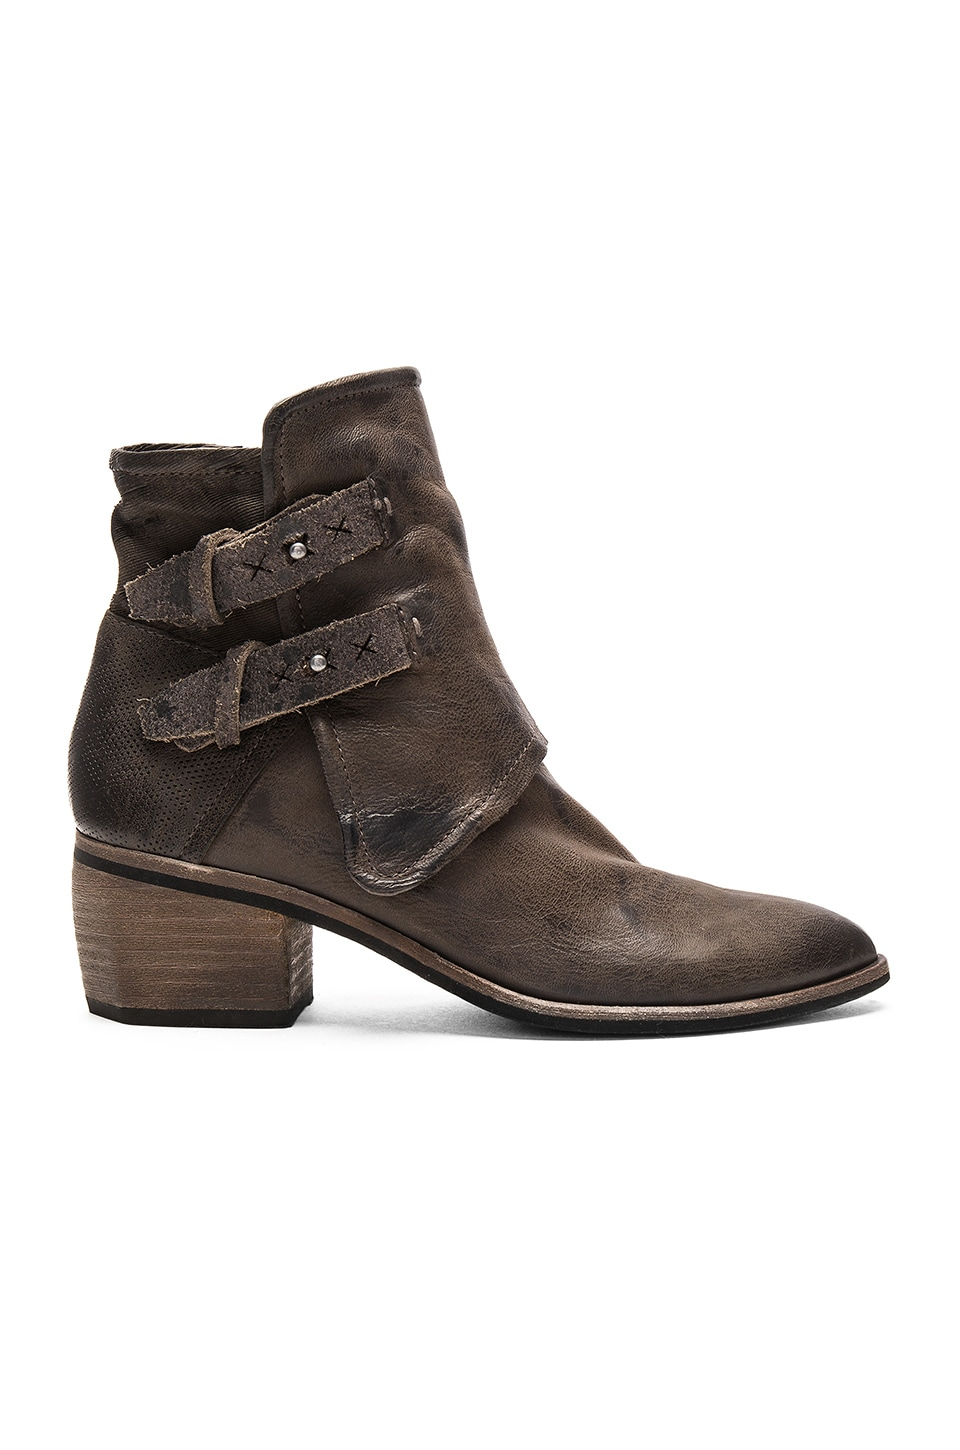 Marley Bootie at REVOLVE